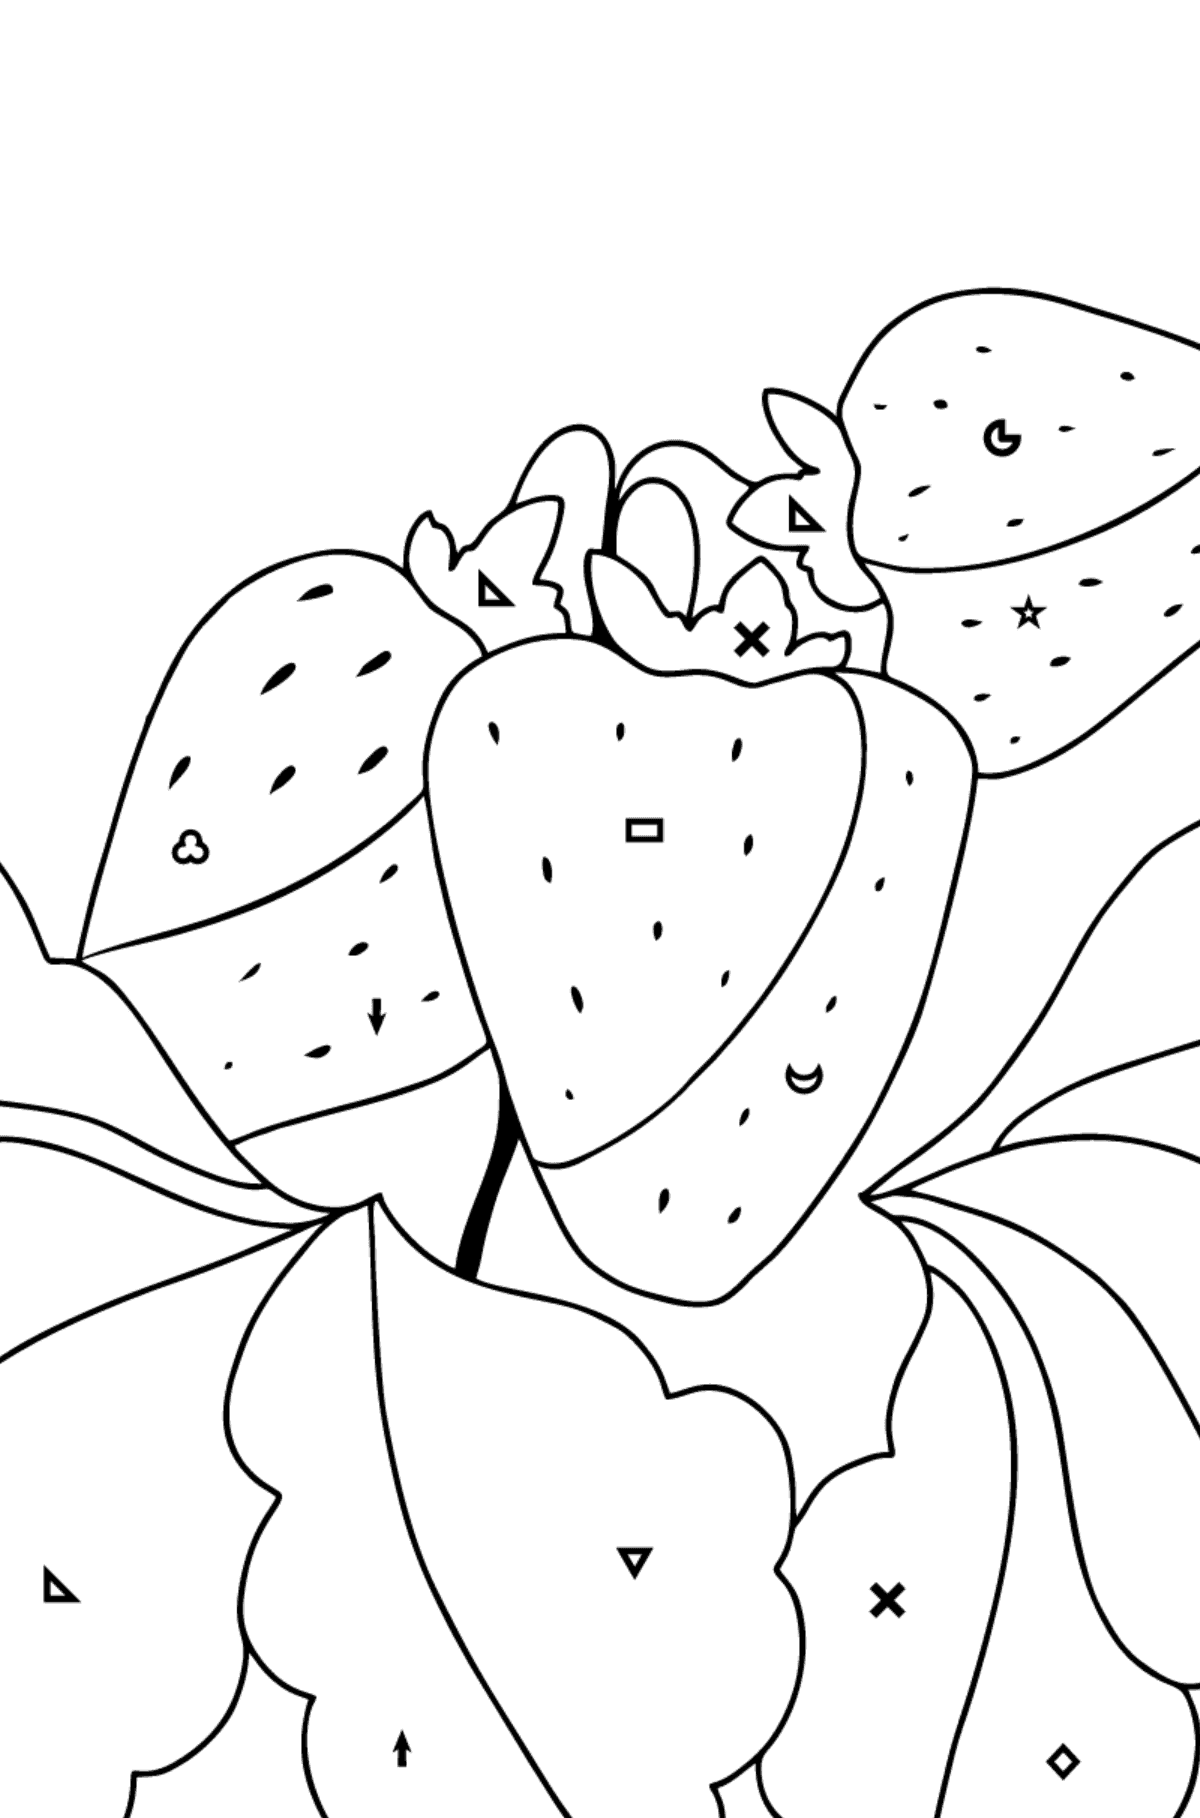 Summer Coloring Page - Strawberries are Ready on the Garden Bed - Coloring by Symbols and Geometric Shapes for Children